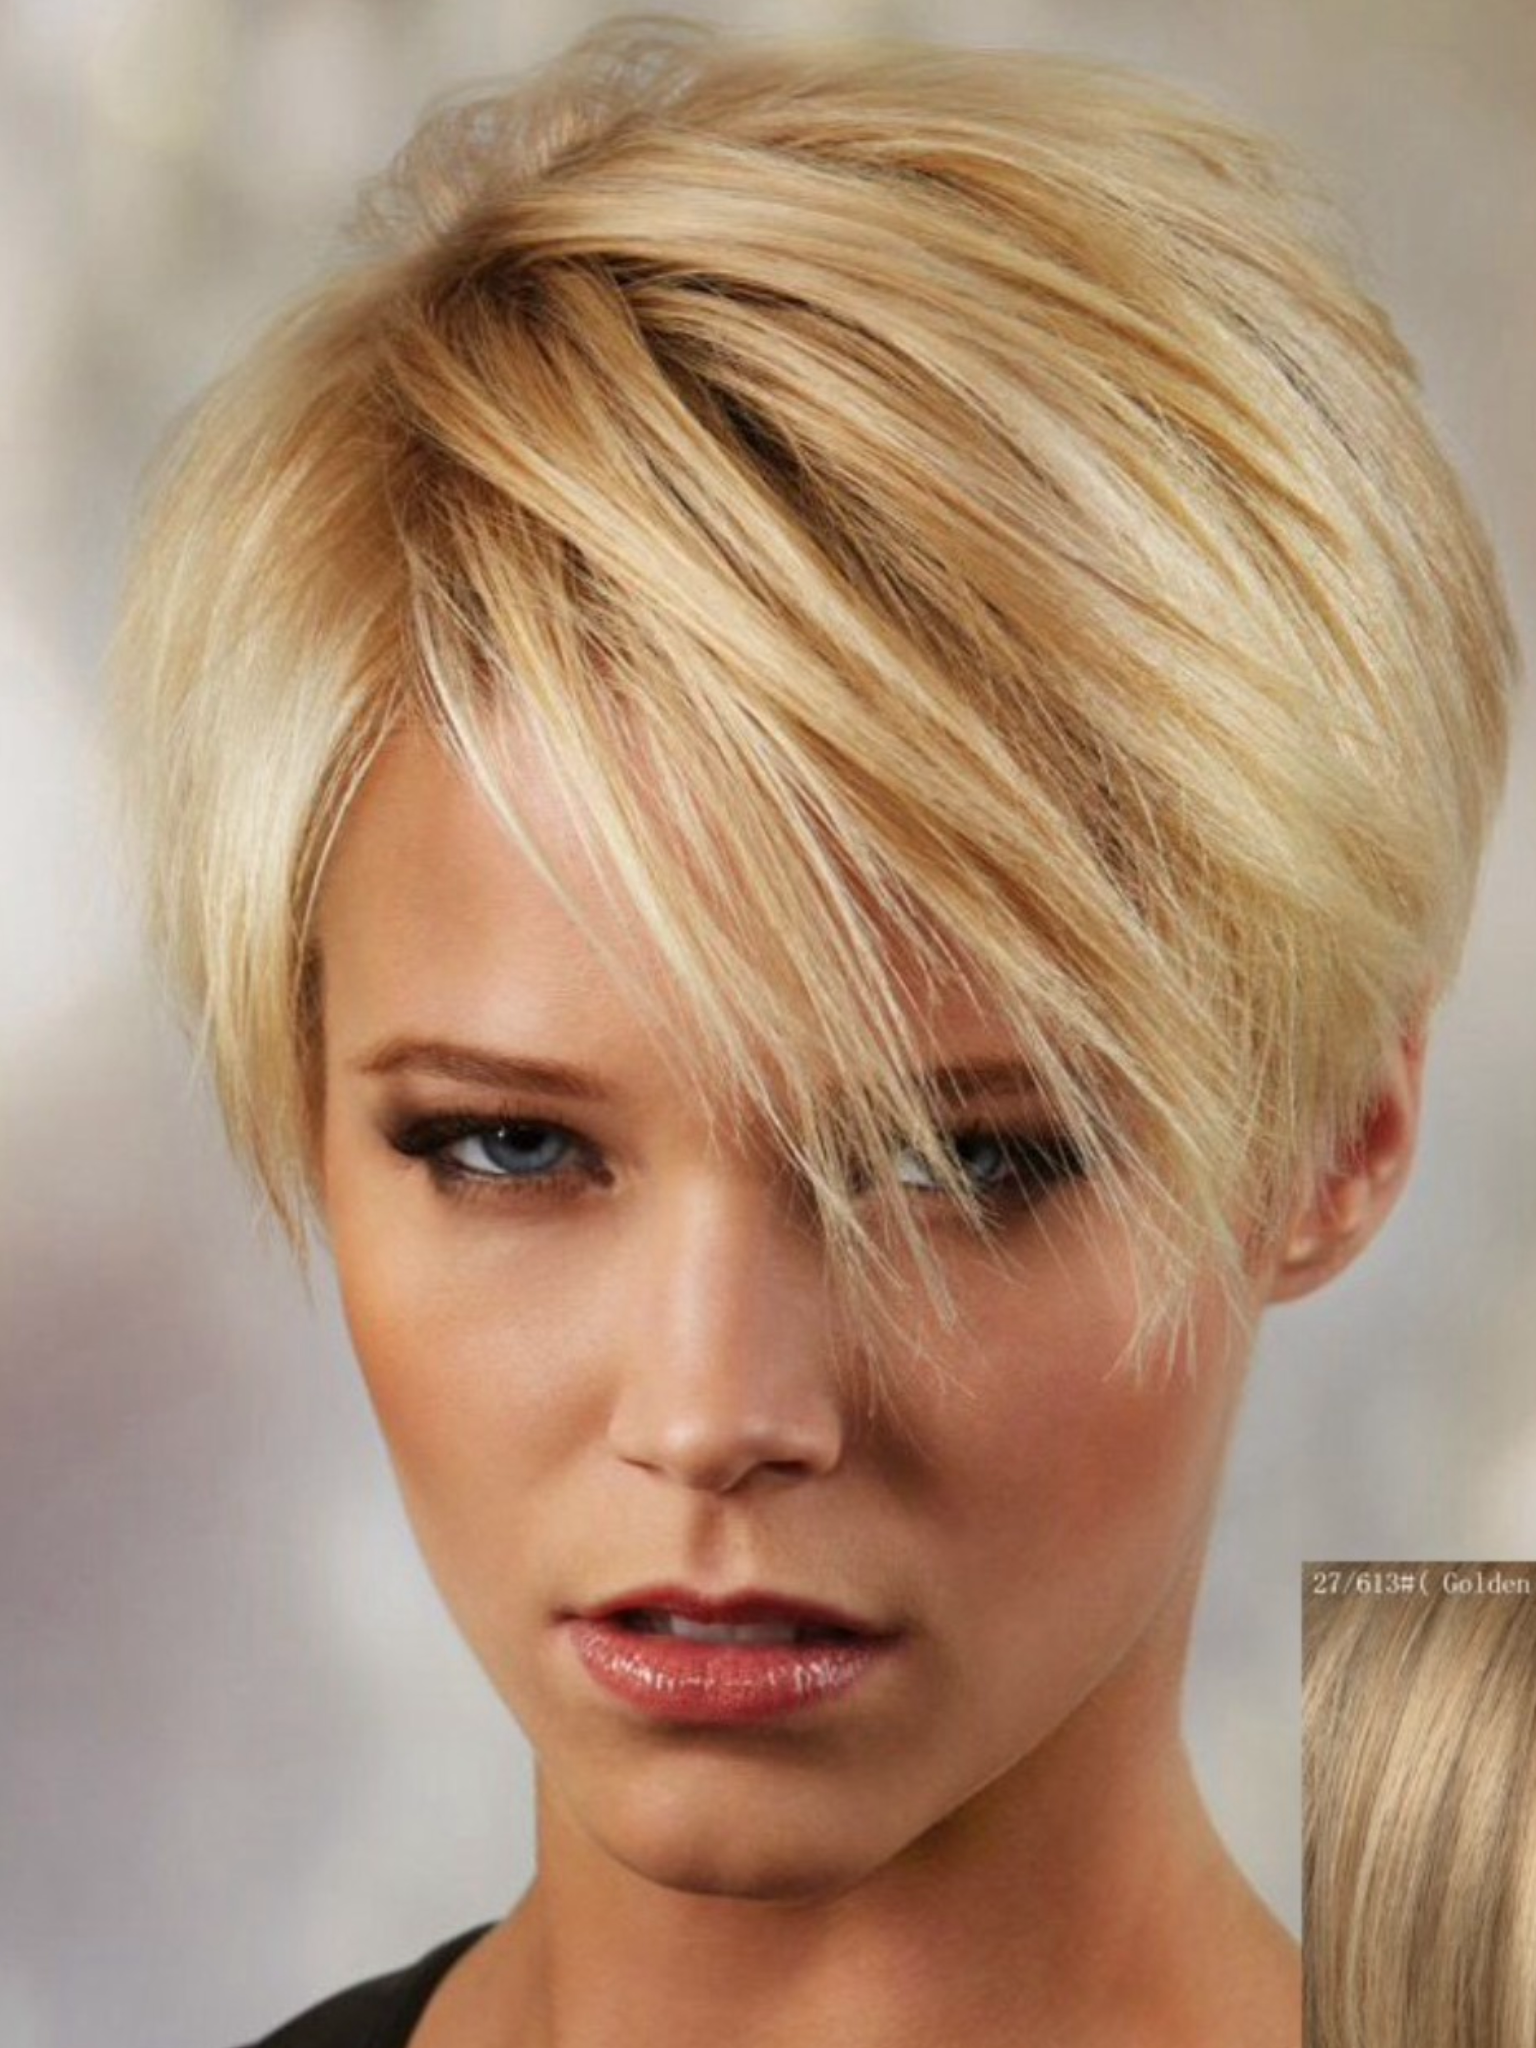 Pin by silvana bancalari on cabello pinterest short hair